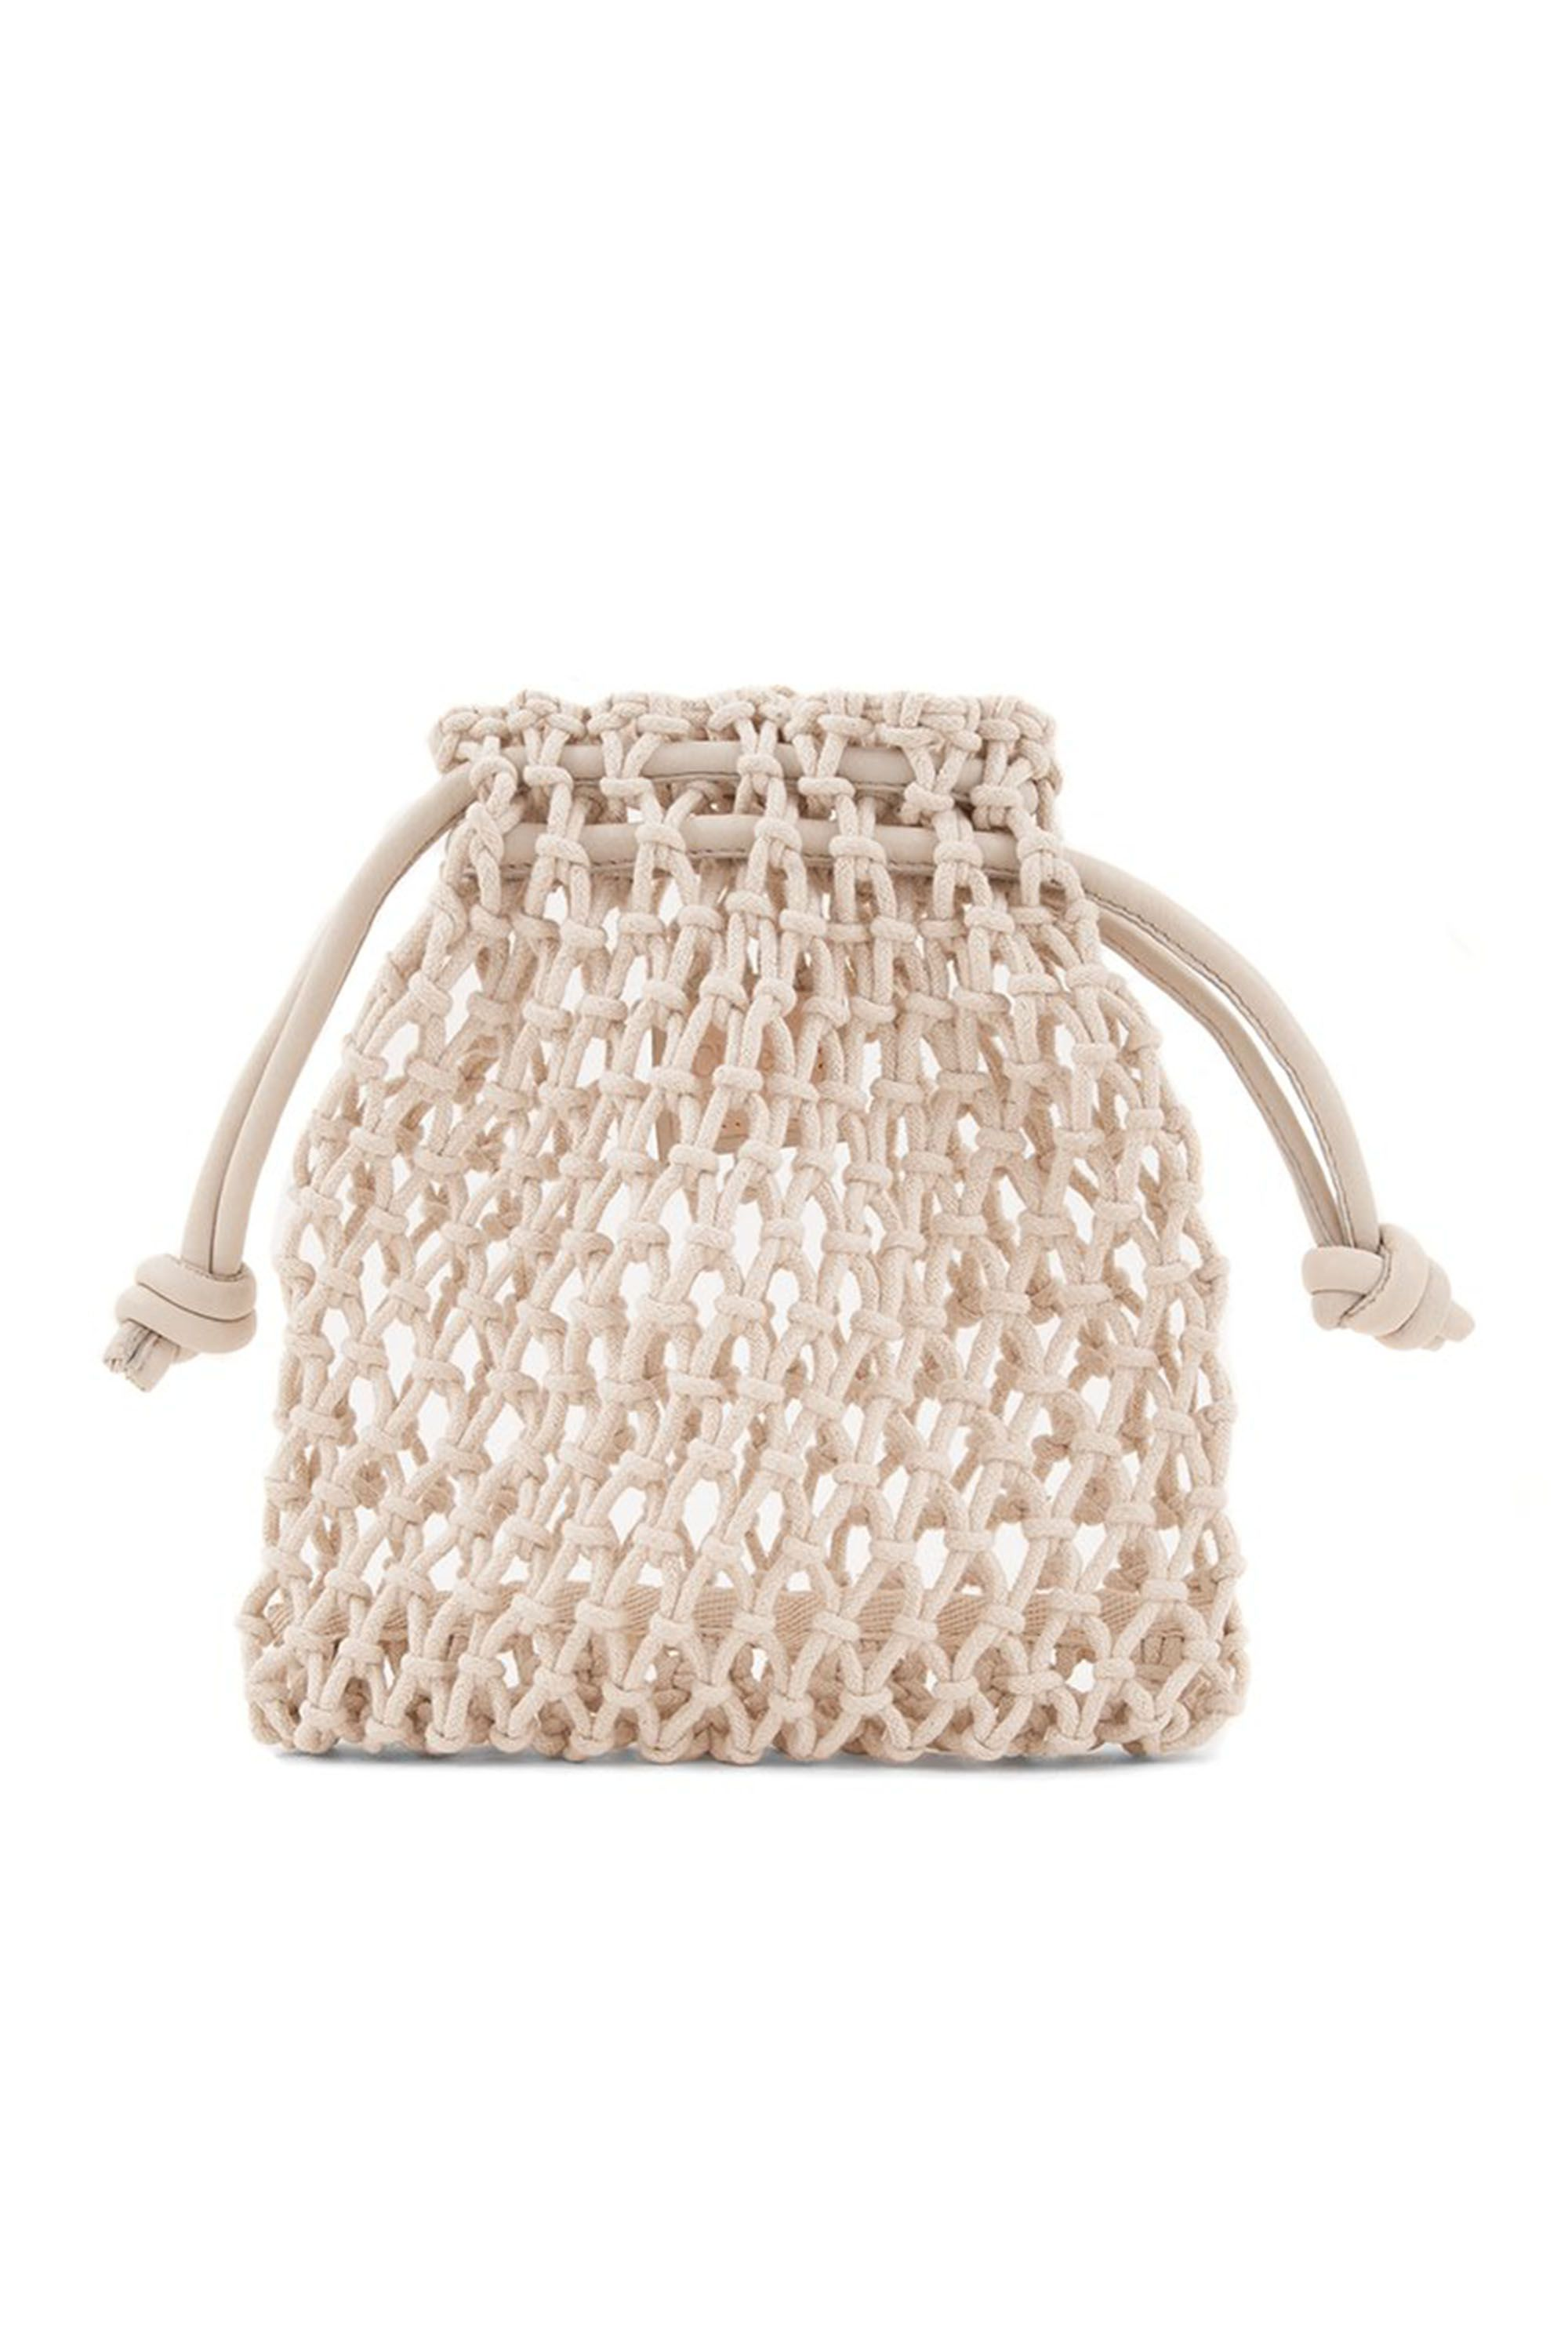 c03b04059126 10 Drawstring Bags That Will Force You to Lighten Up This Summer